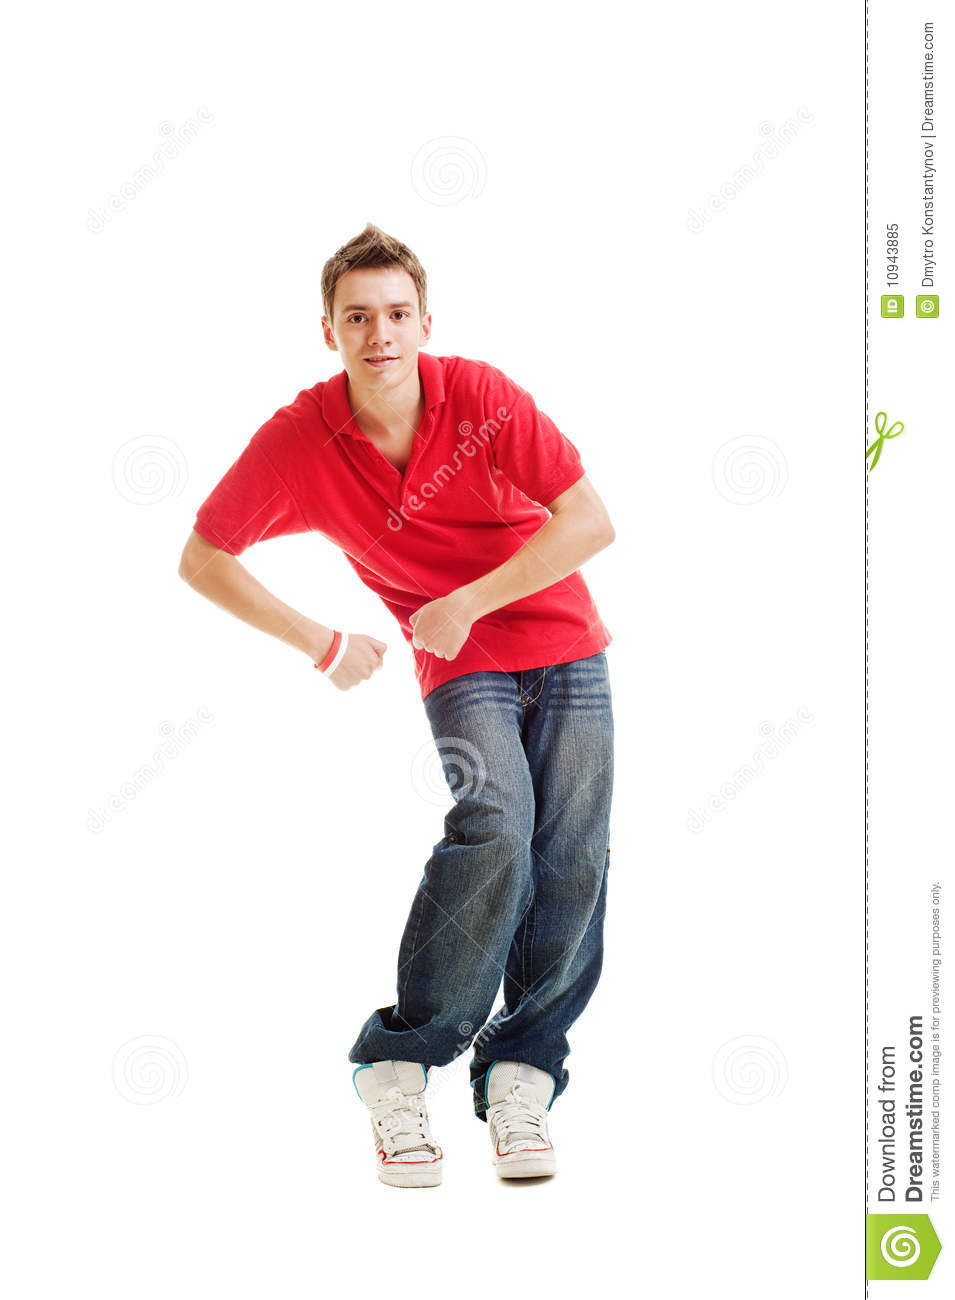 Dancing Hip Hop Guy In Red T Shirt Royalty Free Stock